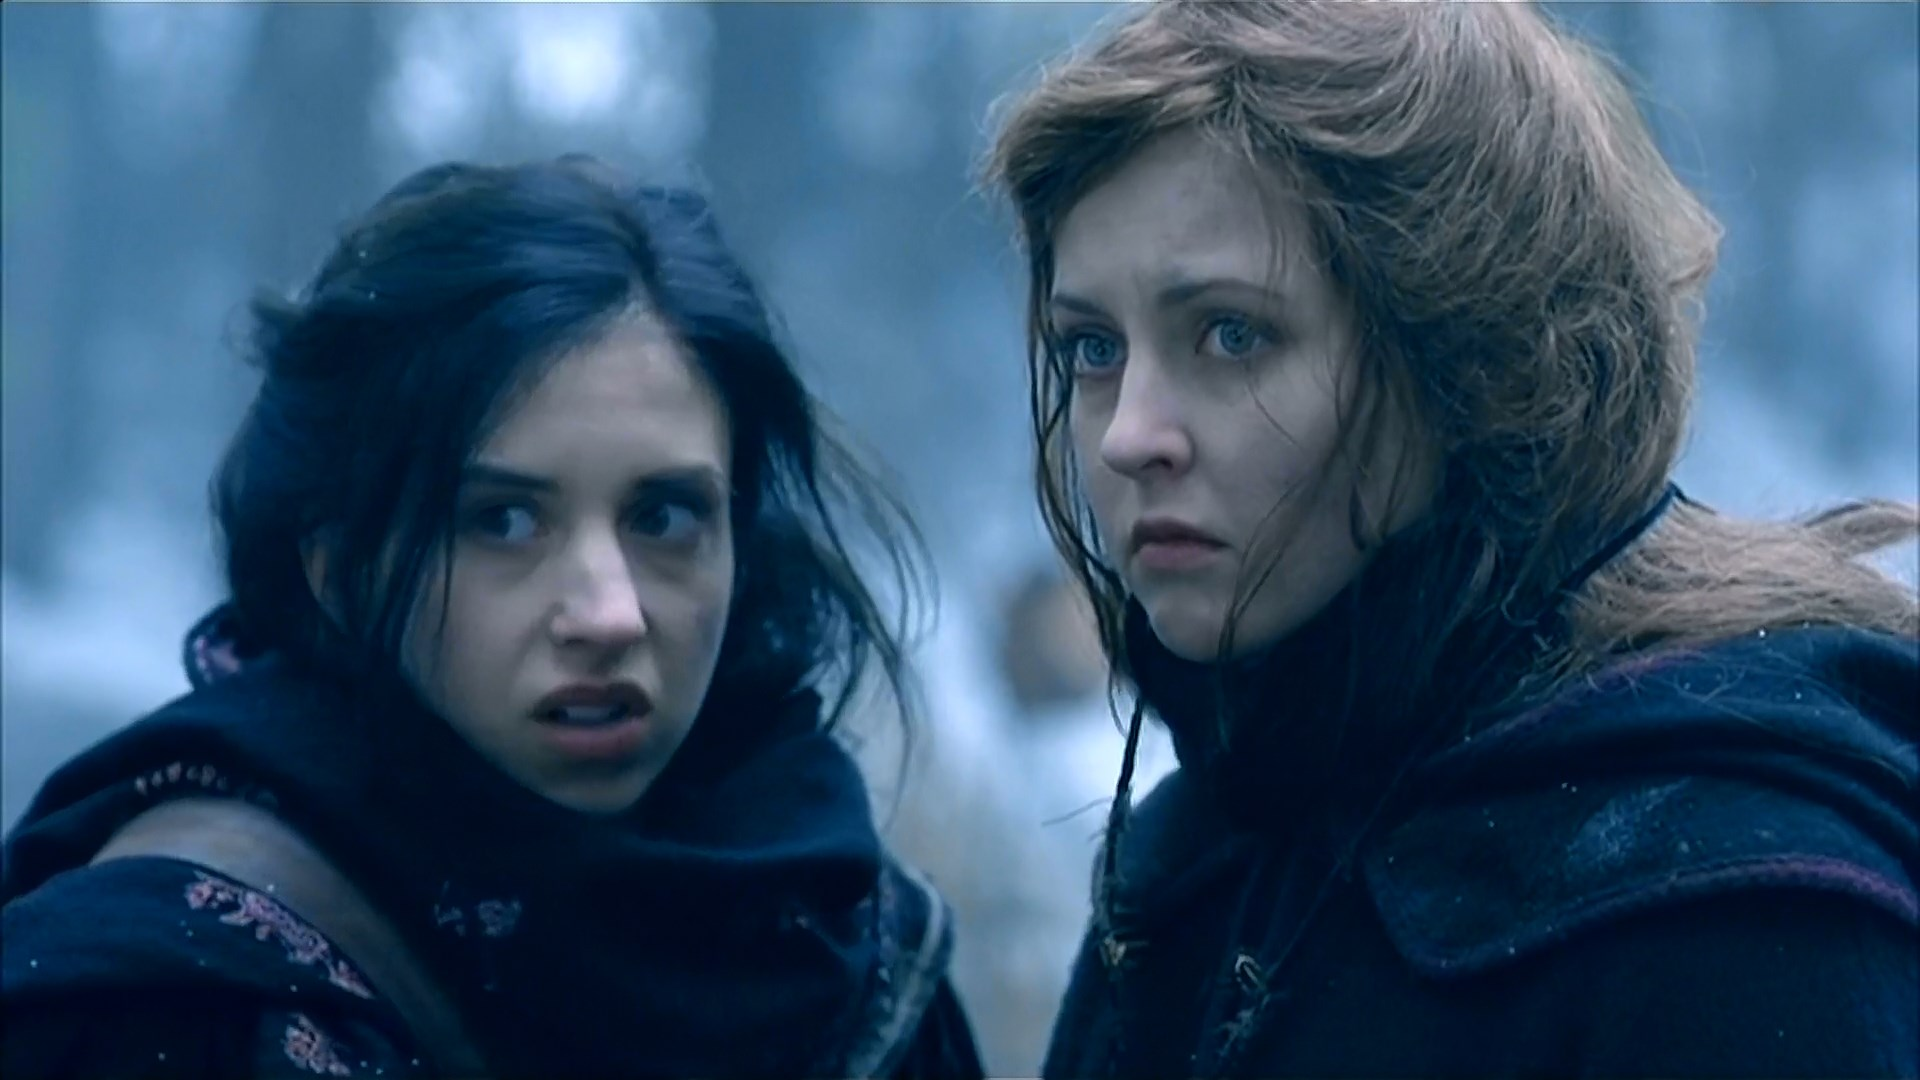 (l to r) Sisters Emily Perkins and Katharine Isabelle back in a pioneer setting in Ginger Snaps Back The Beginning (2004)